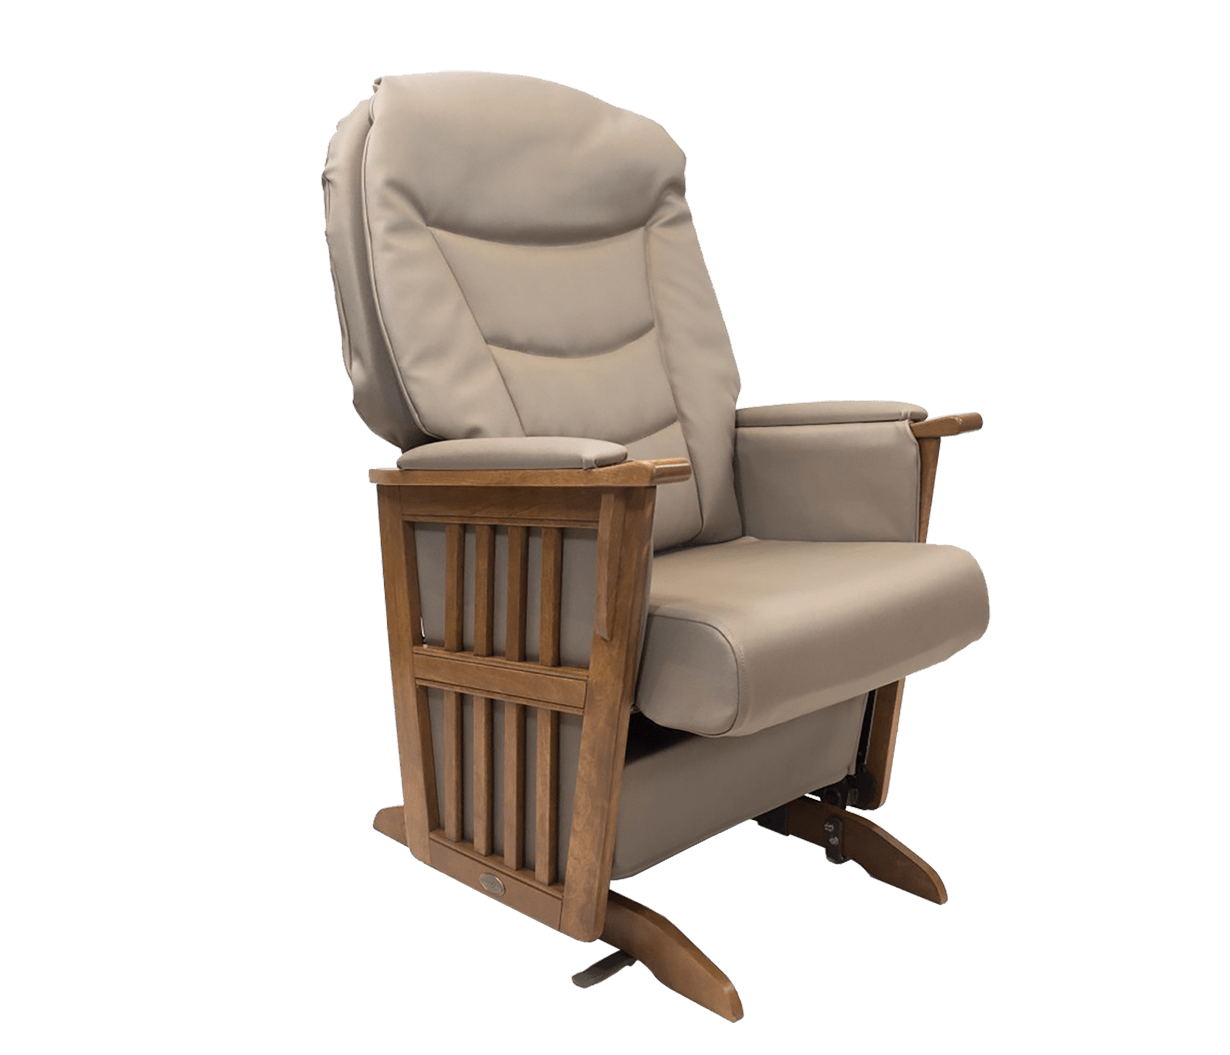 Fauteuil Inclinable Design Accueil Lpa Medical